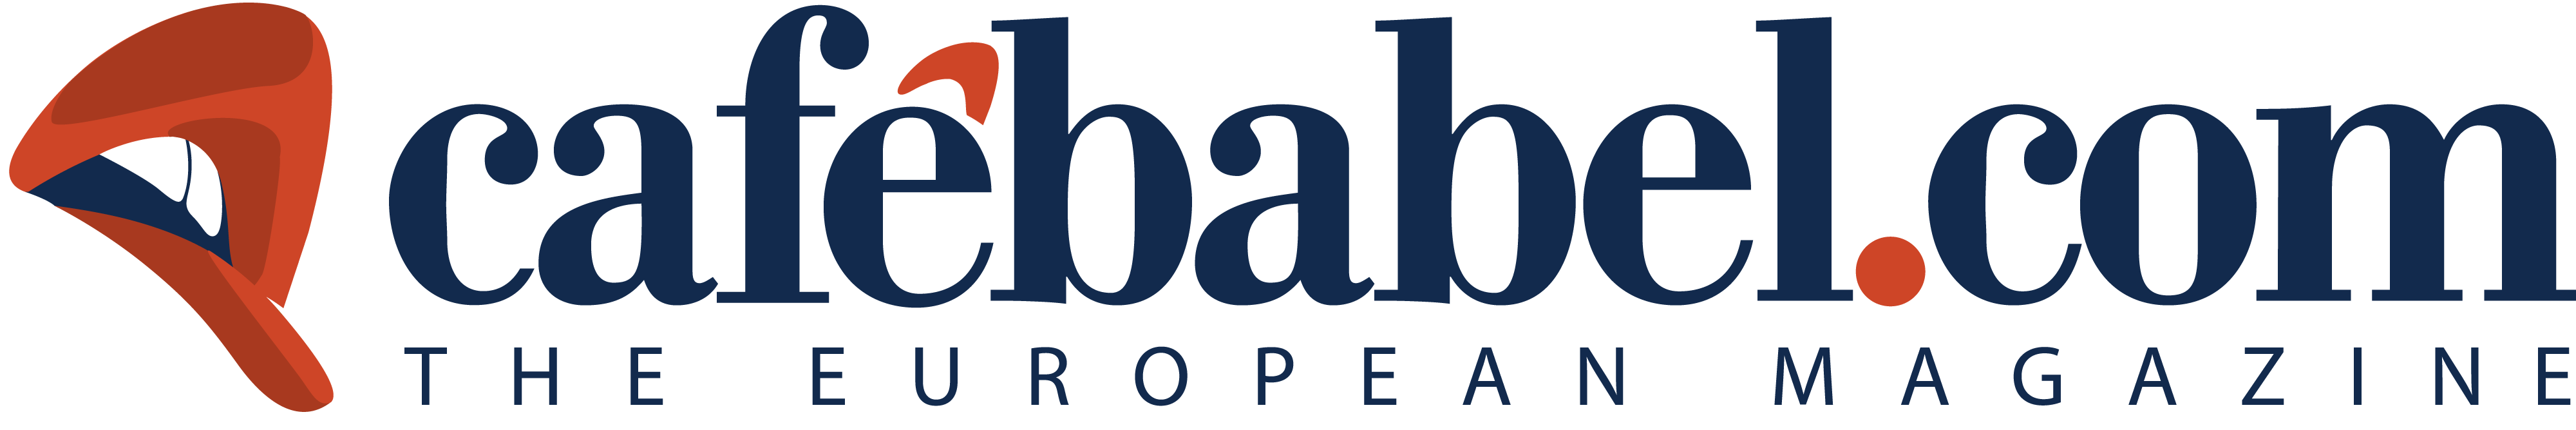 logo_cafebabel.png